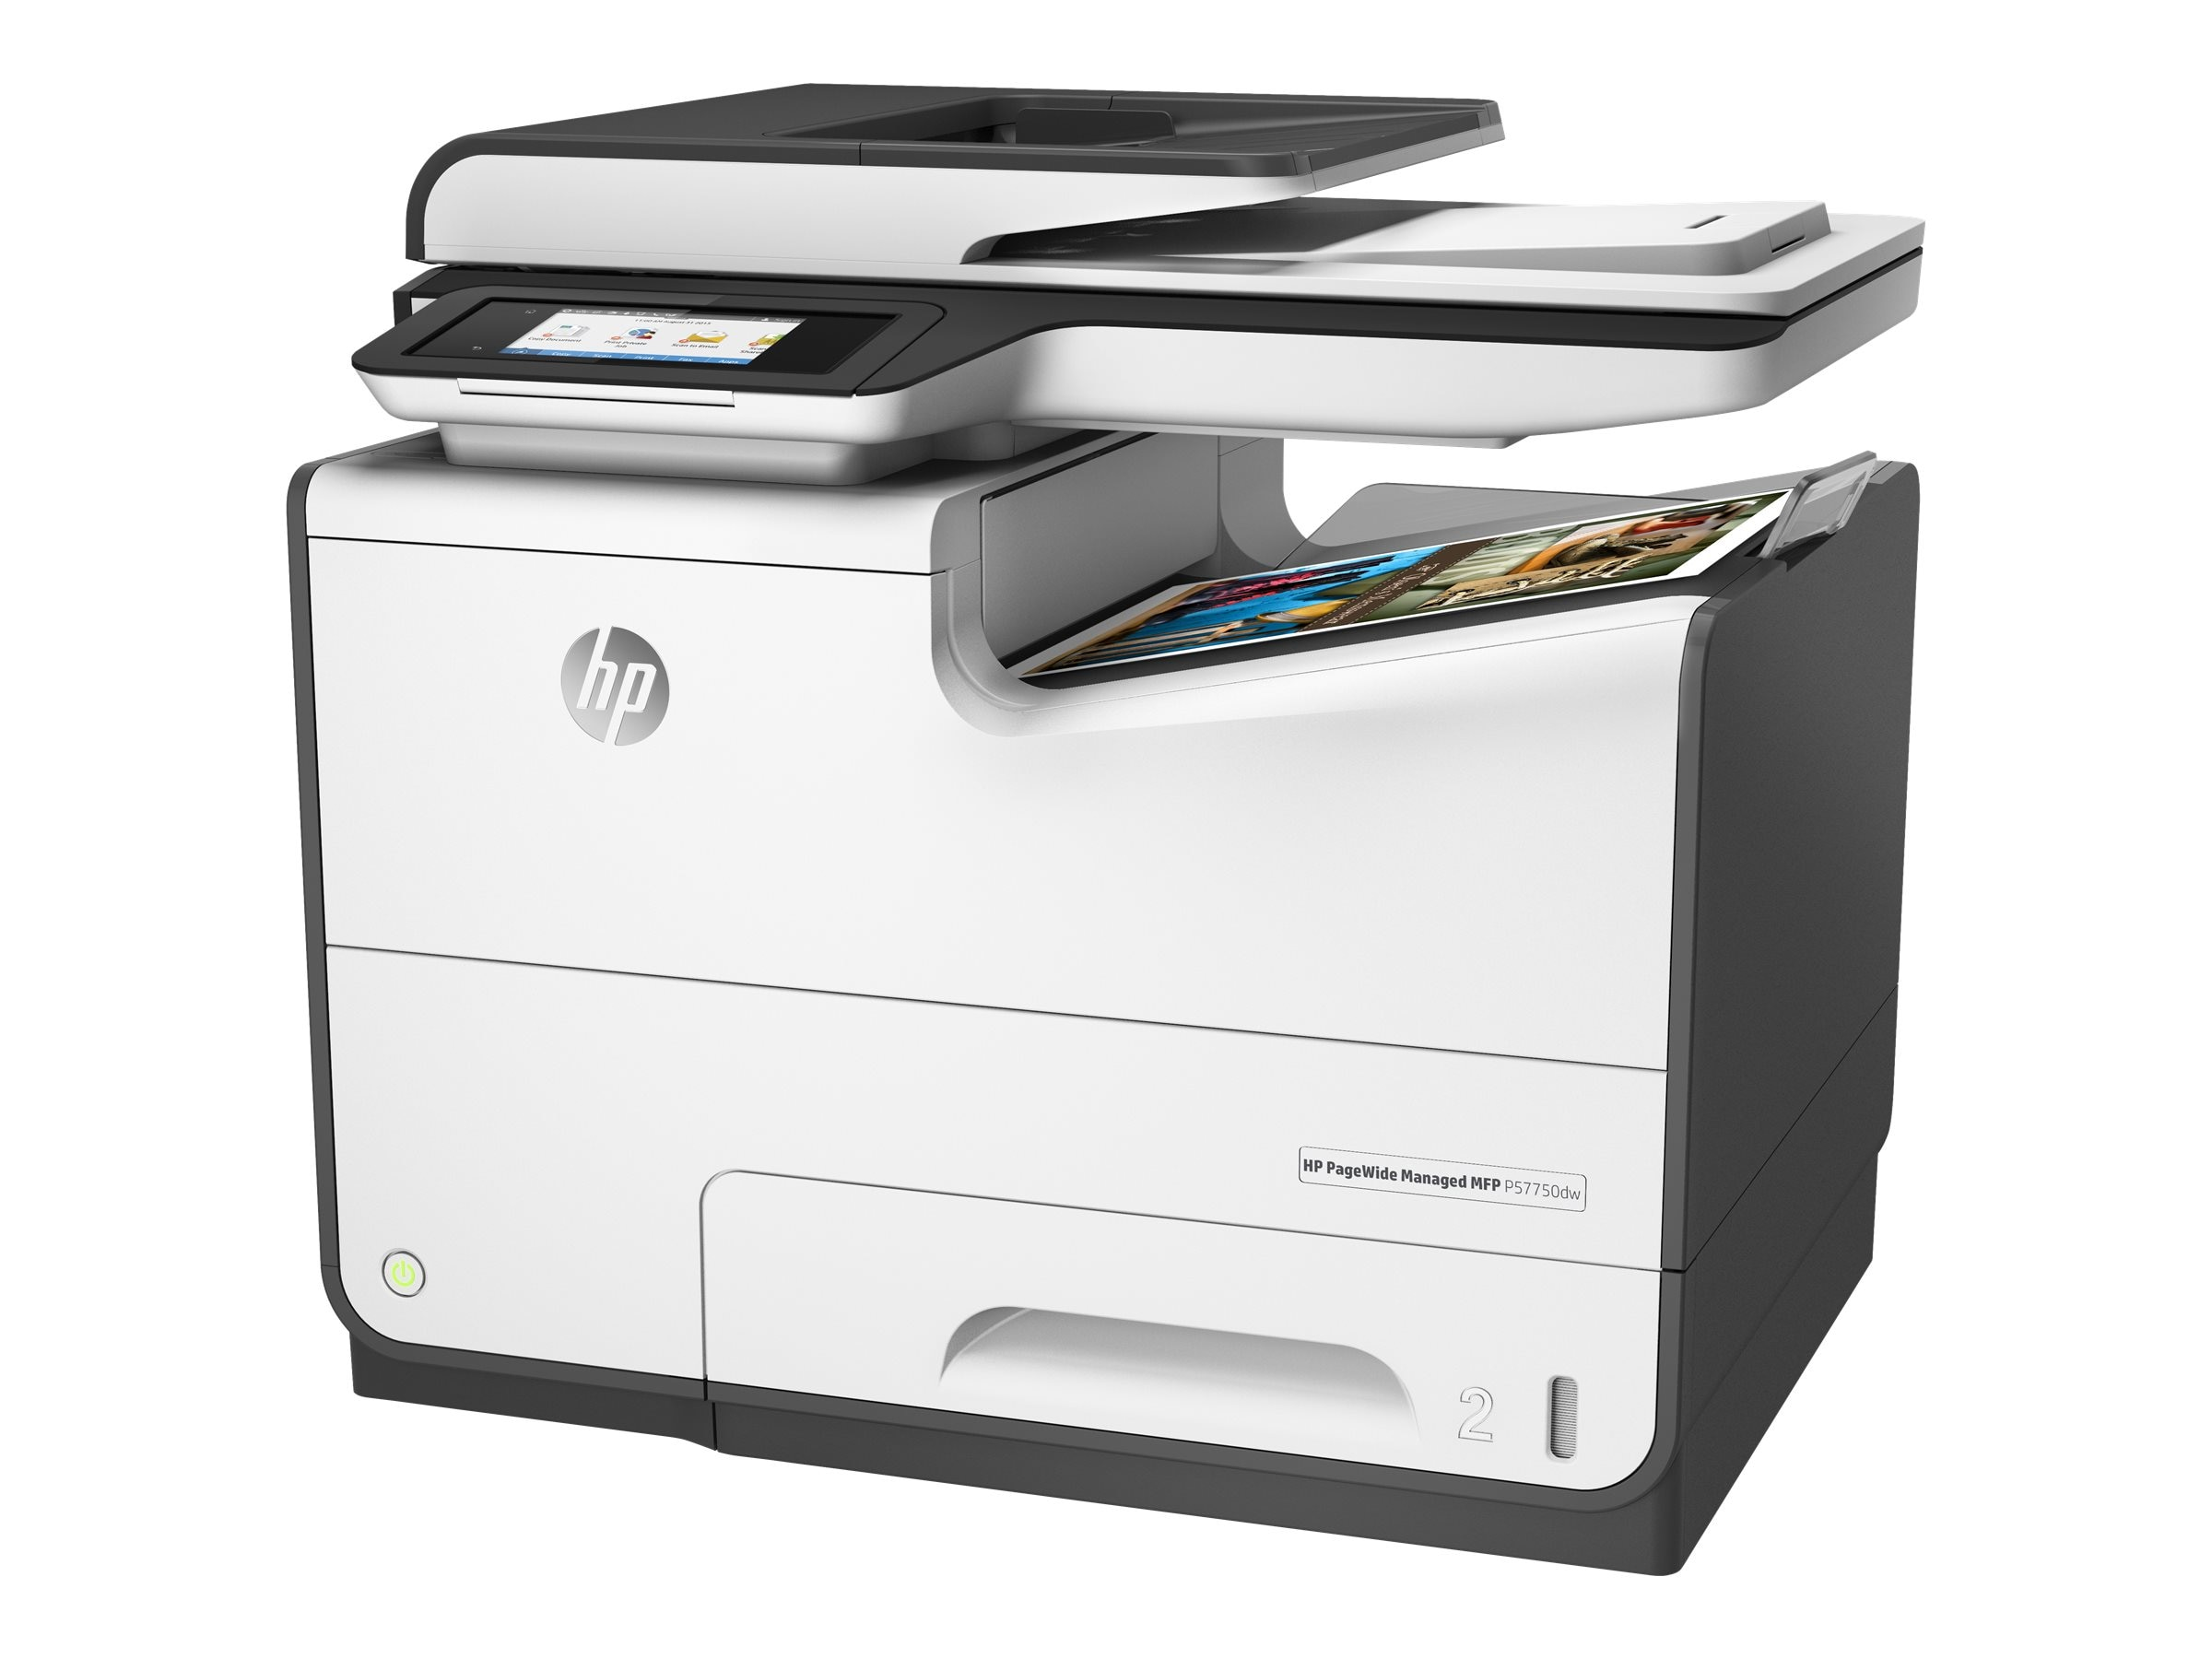 HP PageWide P5770DW managed Printer, J9V82A#B1H, 31832563, Printers - Ink-jet